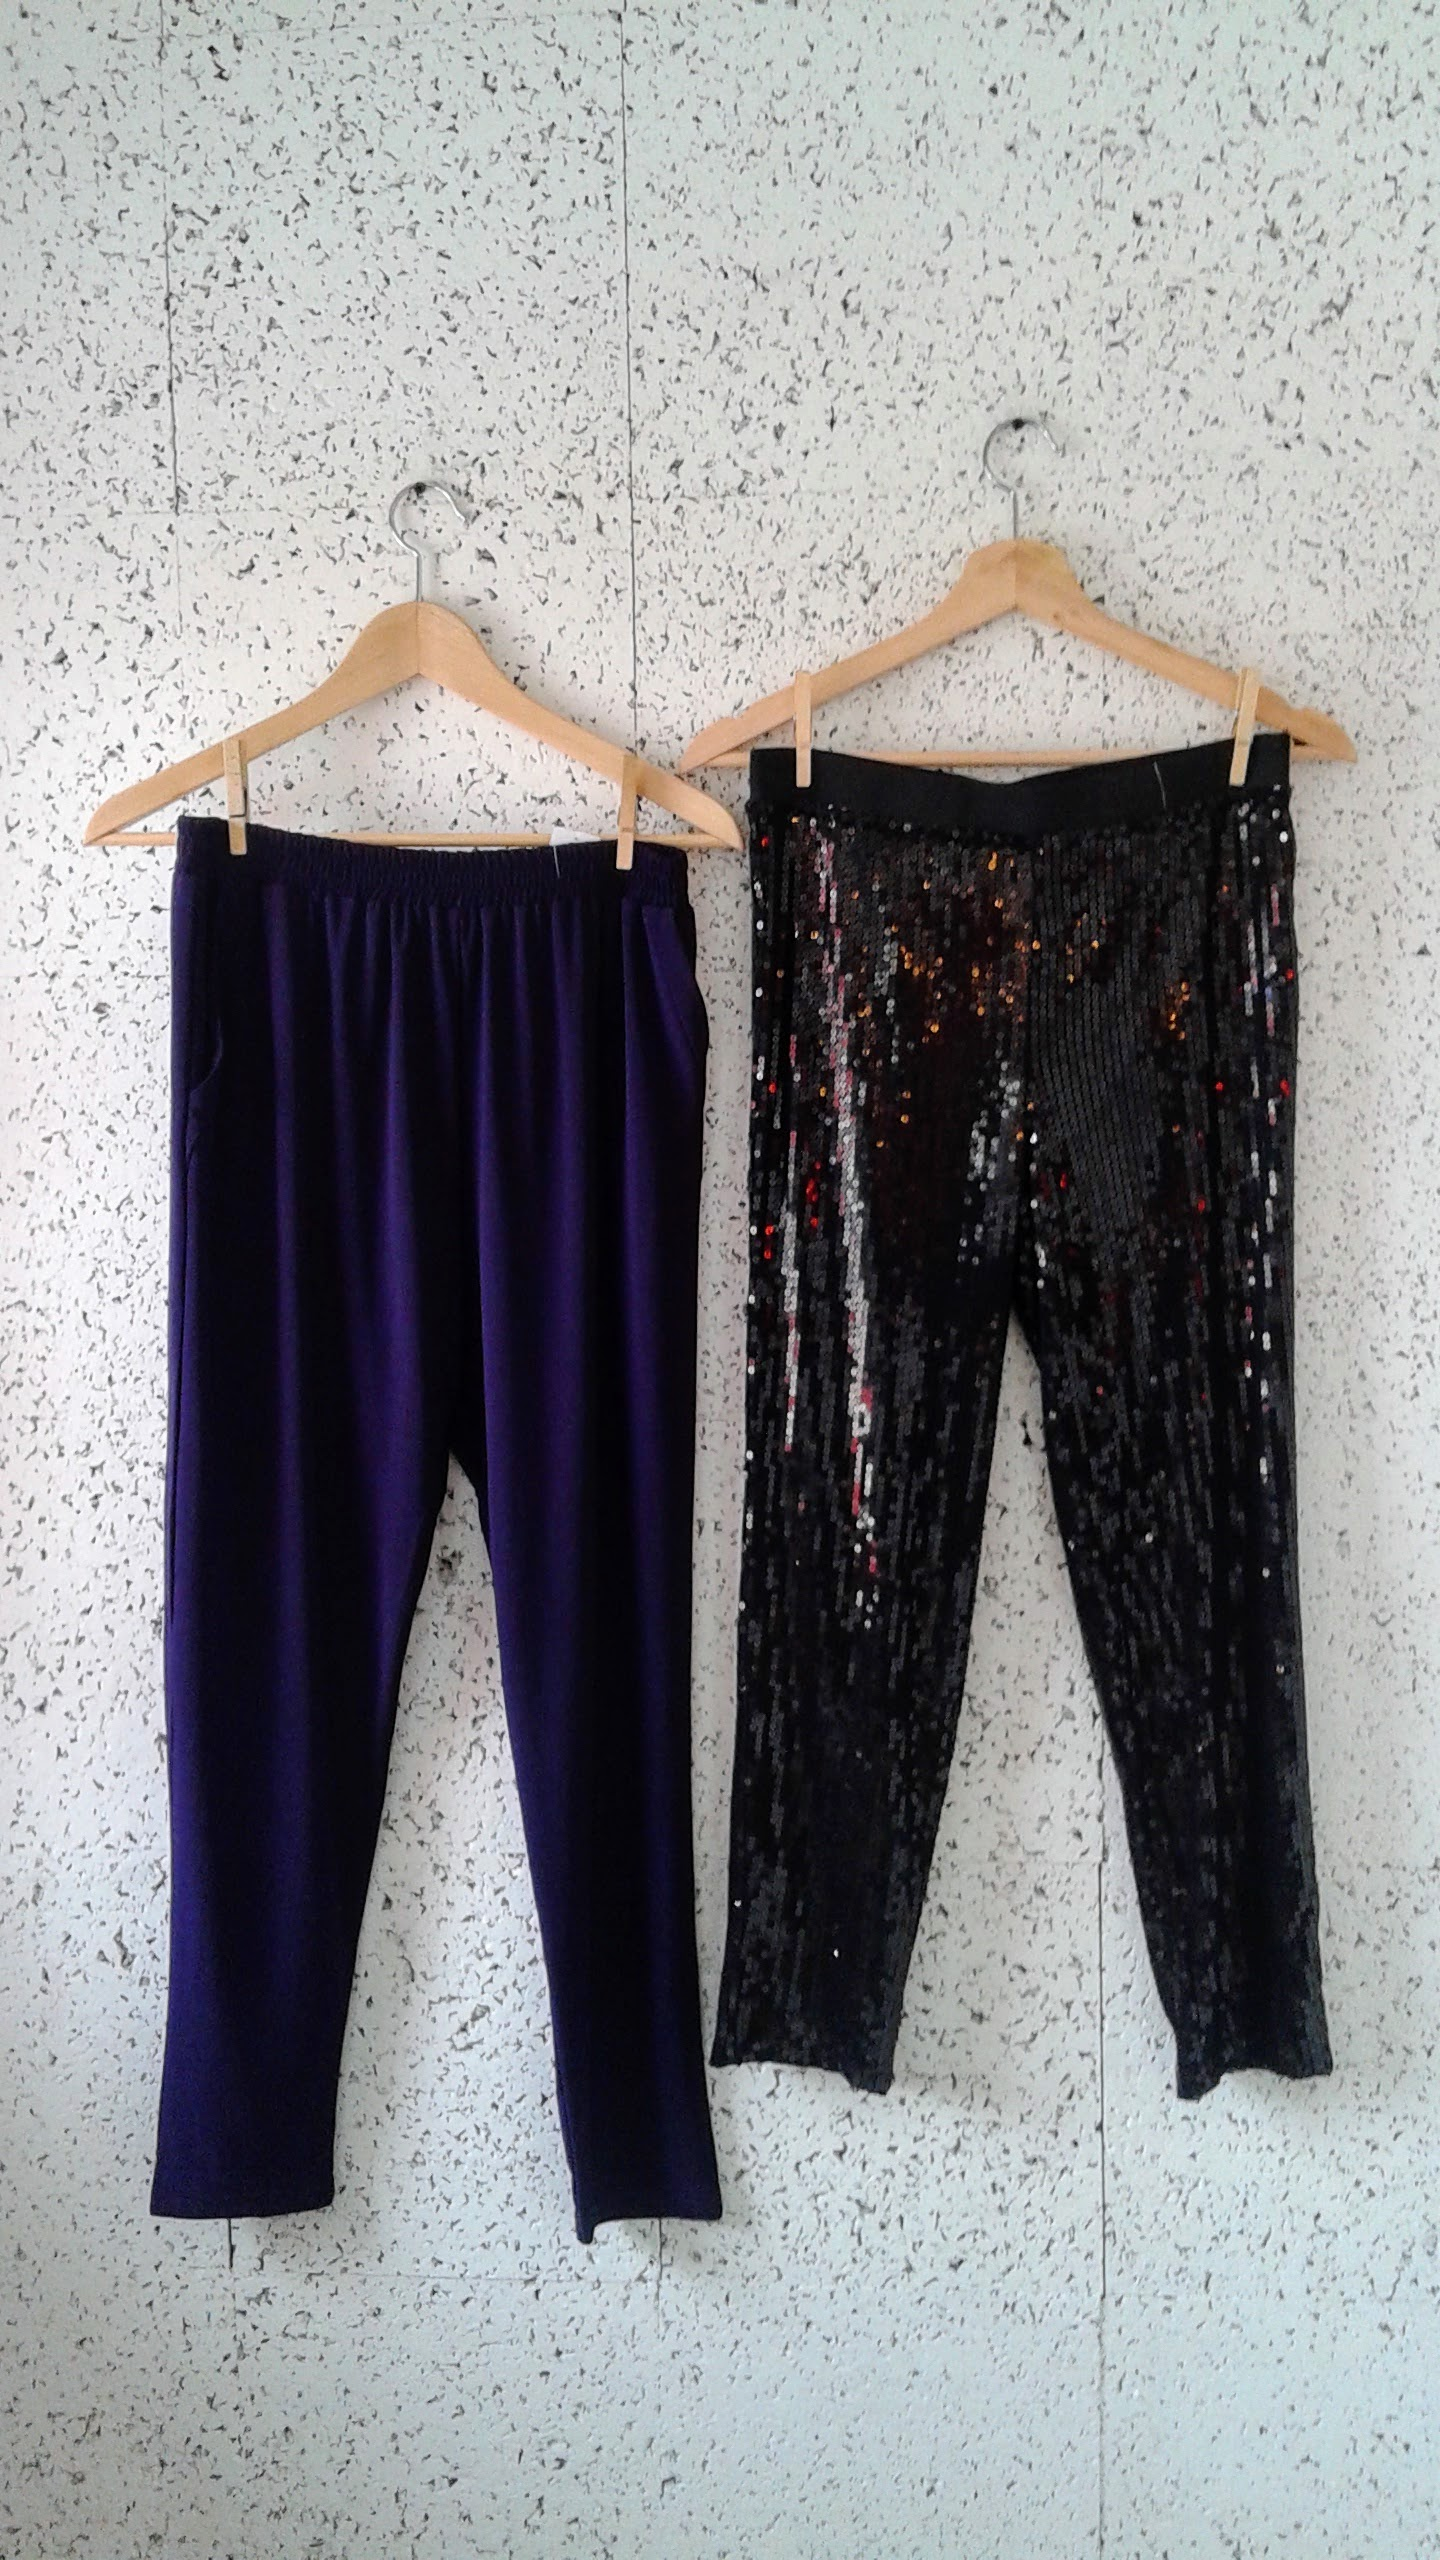 Workhall pants (NWT); Size M, $42. Sequin leggings; Size M, $20